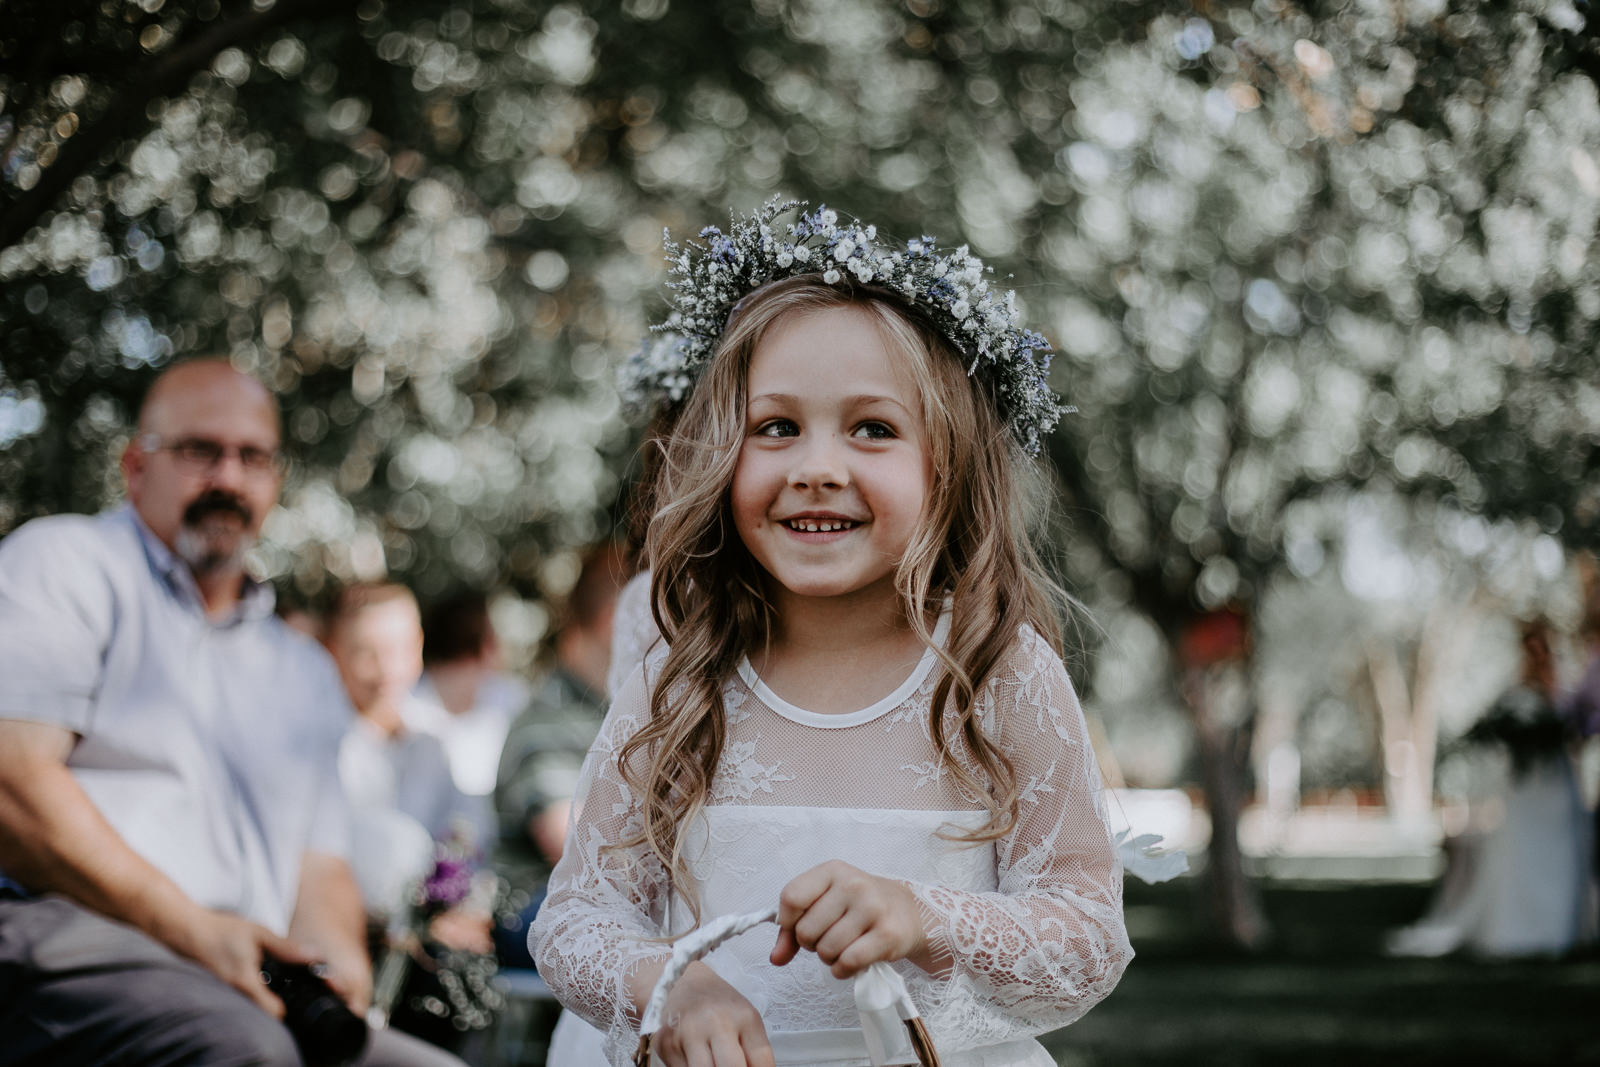 Flower girl smirking while walking down the aisle with guests behind her